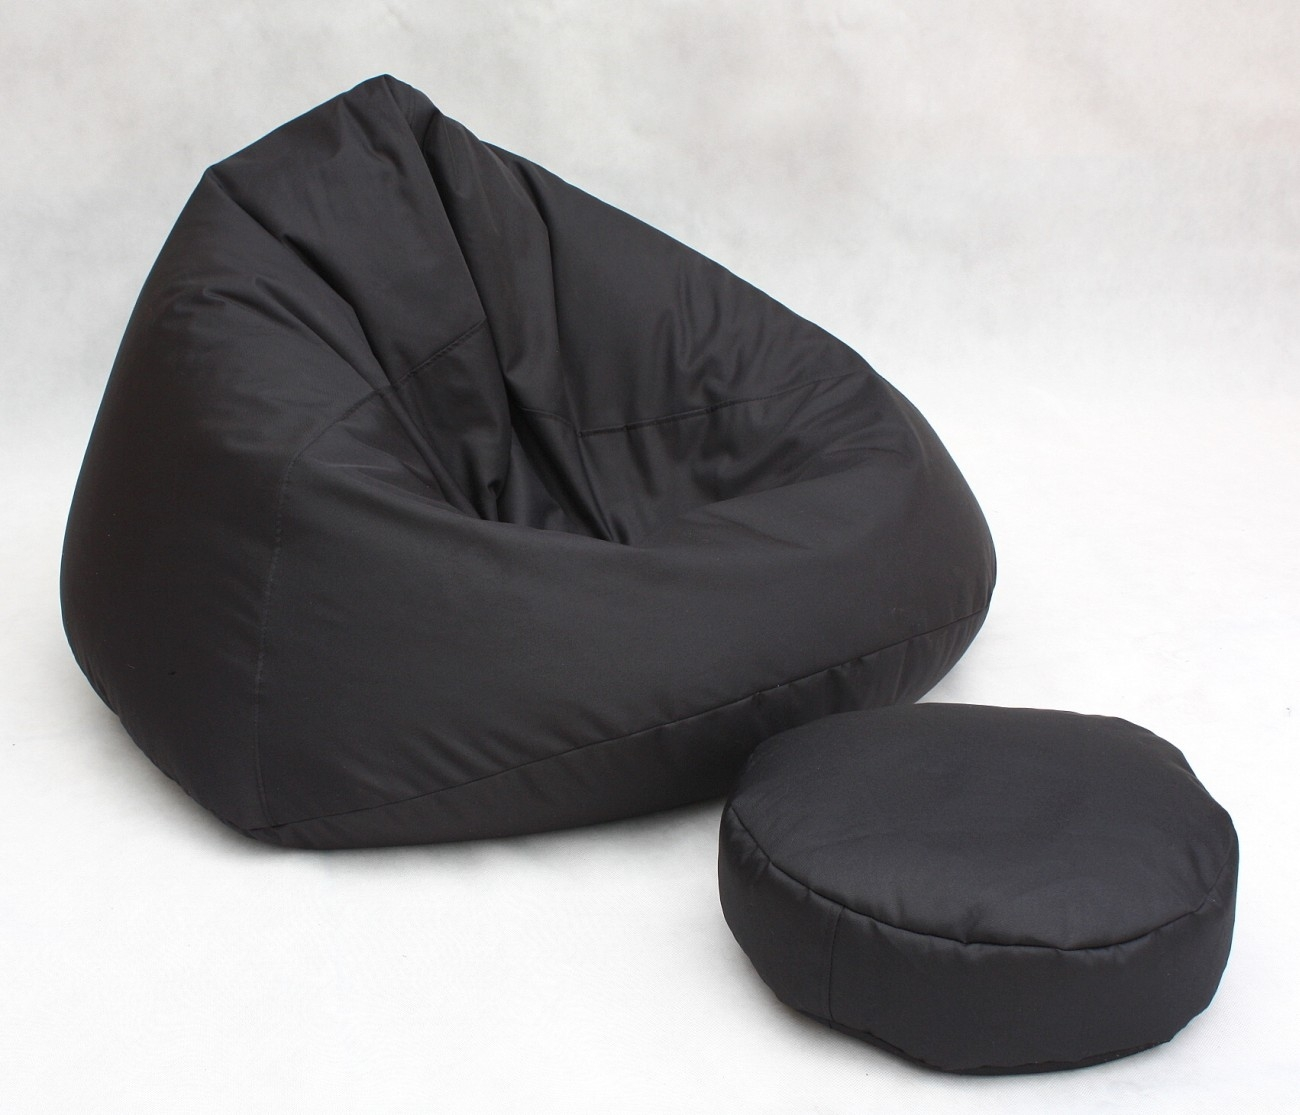 Awe Inspiring Ebay Australia Outdoor Bean Bags Court Appointed Receiver Unemploymentrelief Wooden Chair Designs For Living Room Unemploymentrelieforg